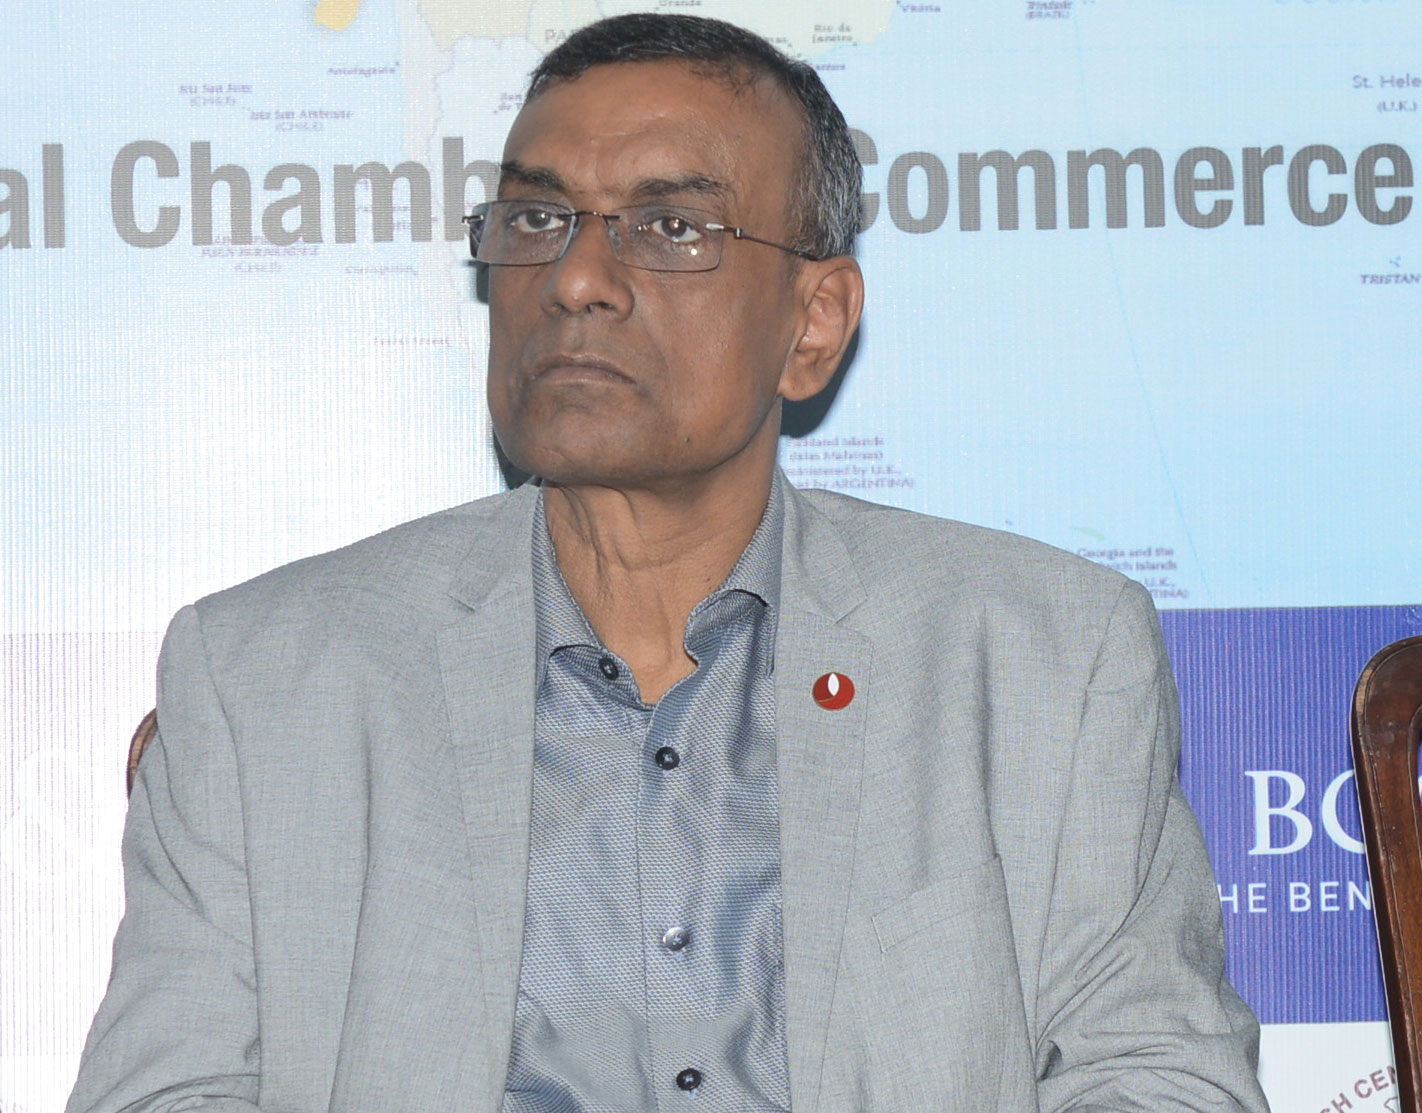 Chandra Shekhar Ghosh